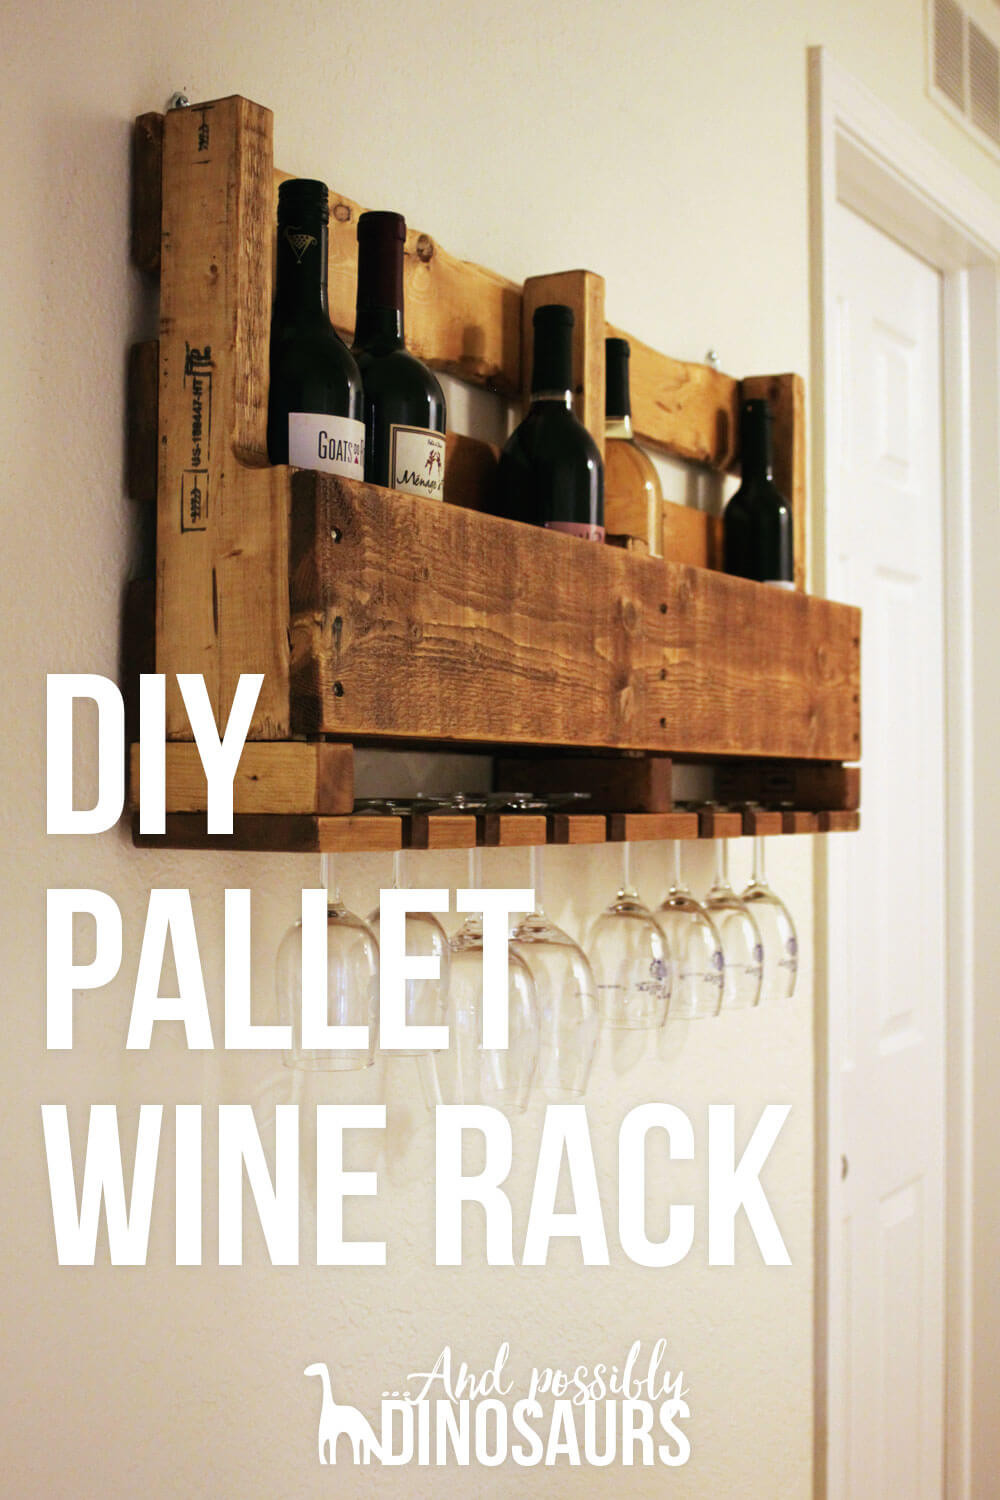 Best ideas about Pallet Wine Rack DIY . Save or Pin DIY Wine Rack from a Pallet And Possibly Dinosaurs Now.